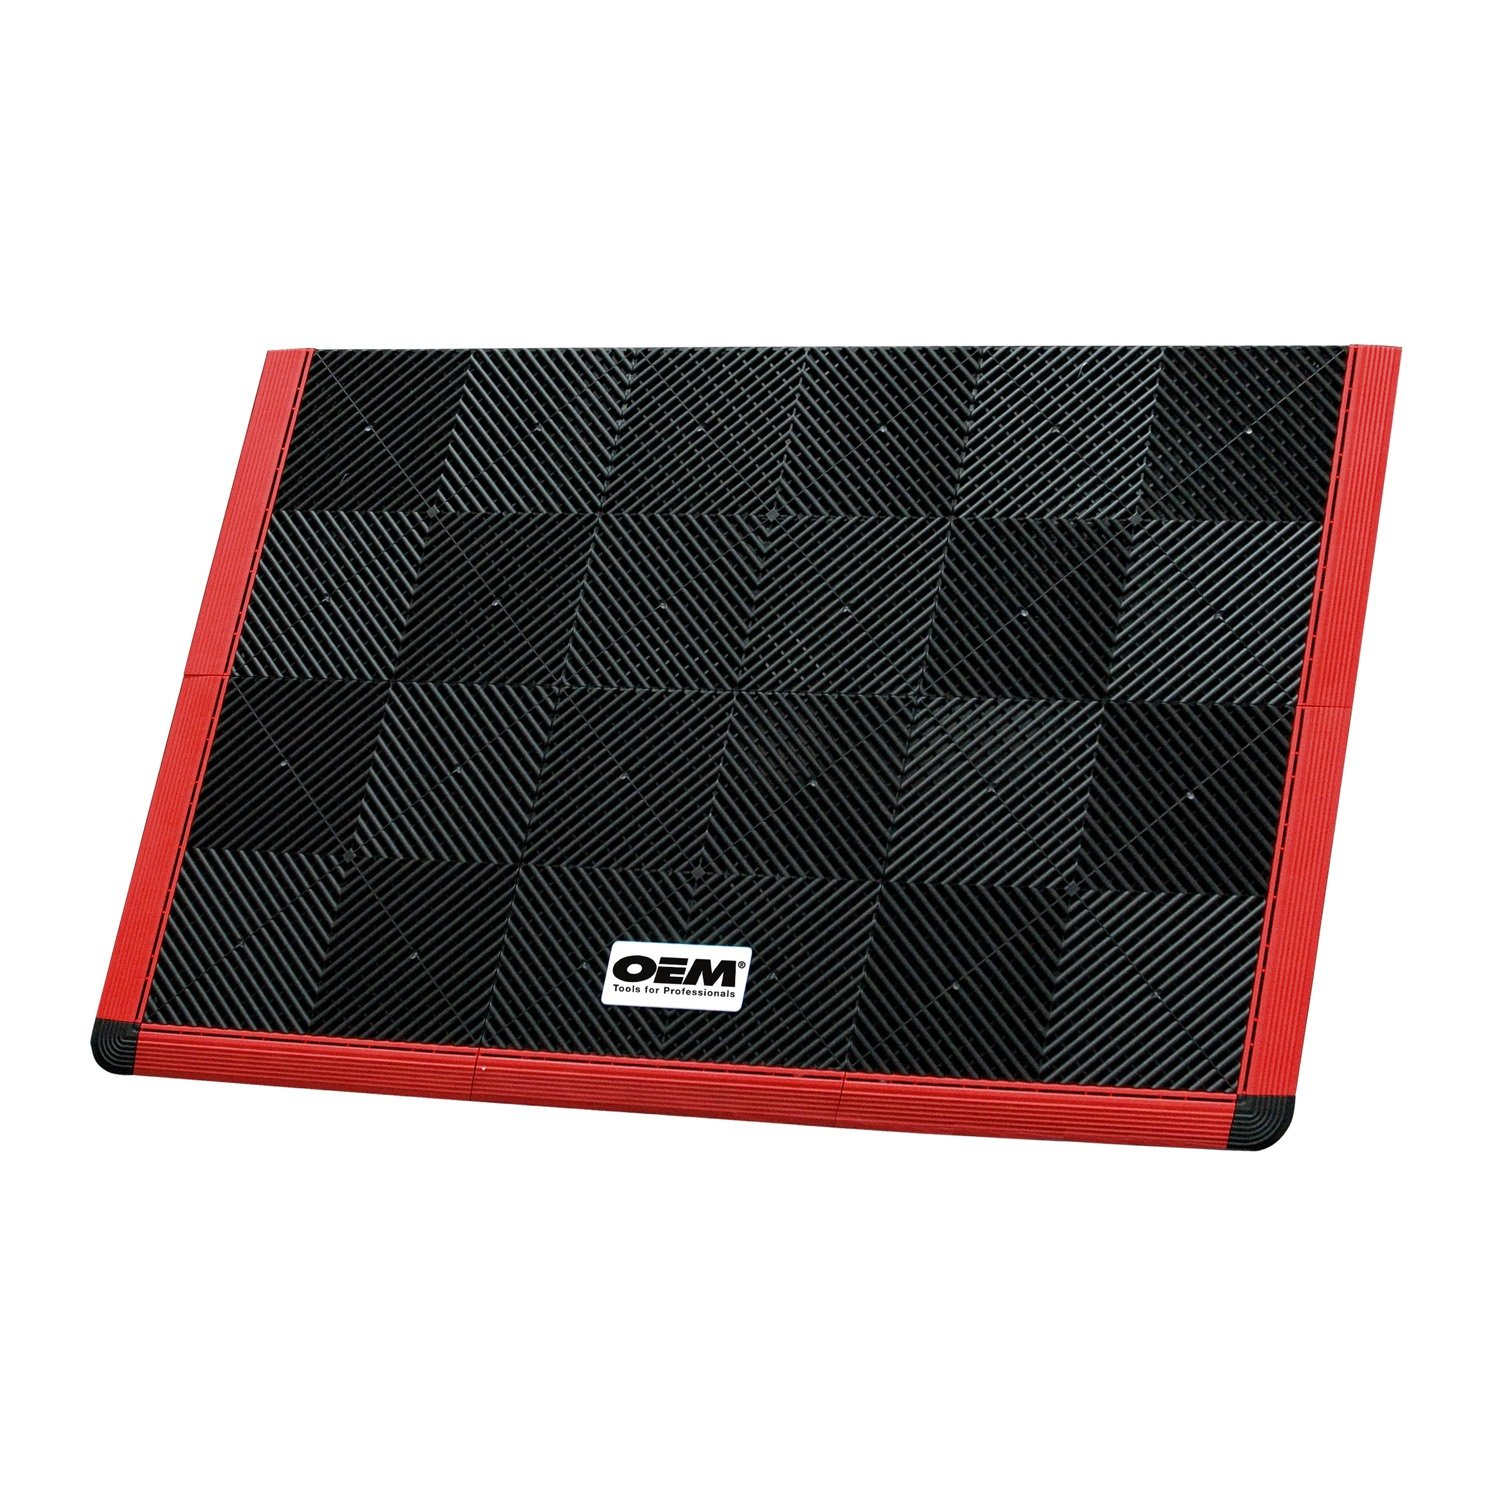 OEMTOOLS 24901 Anti-Fatigue Work Mat